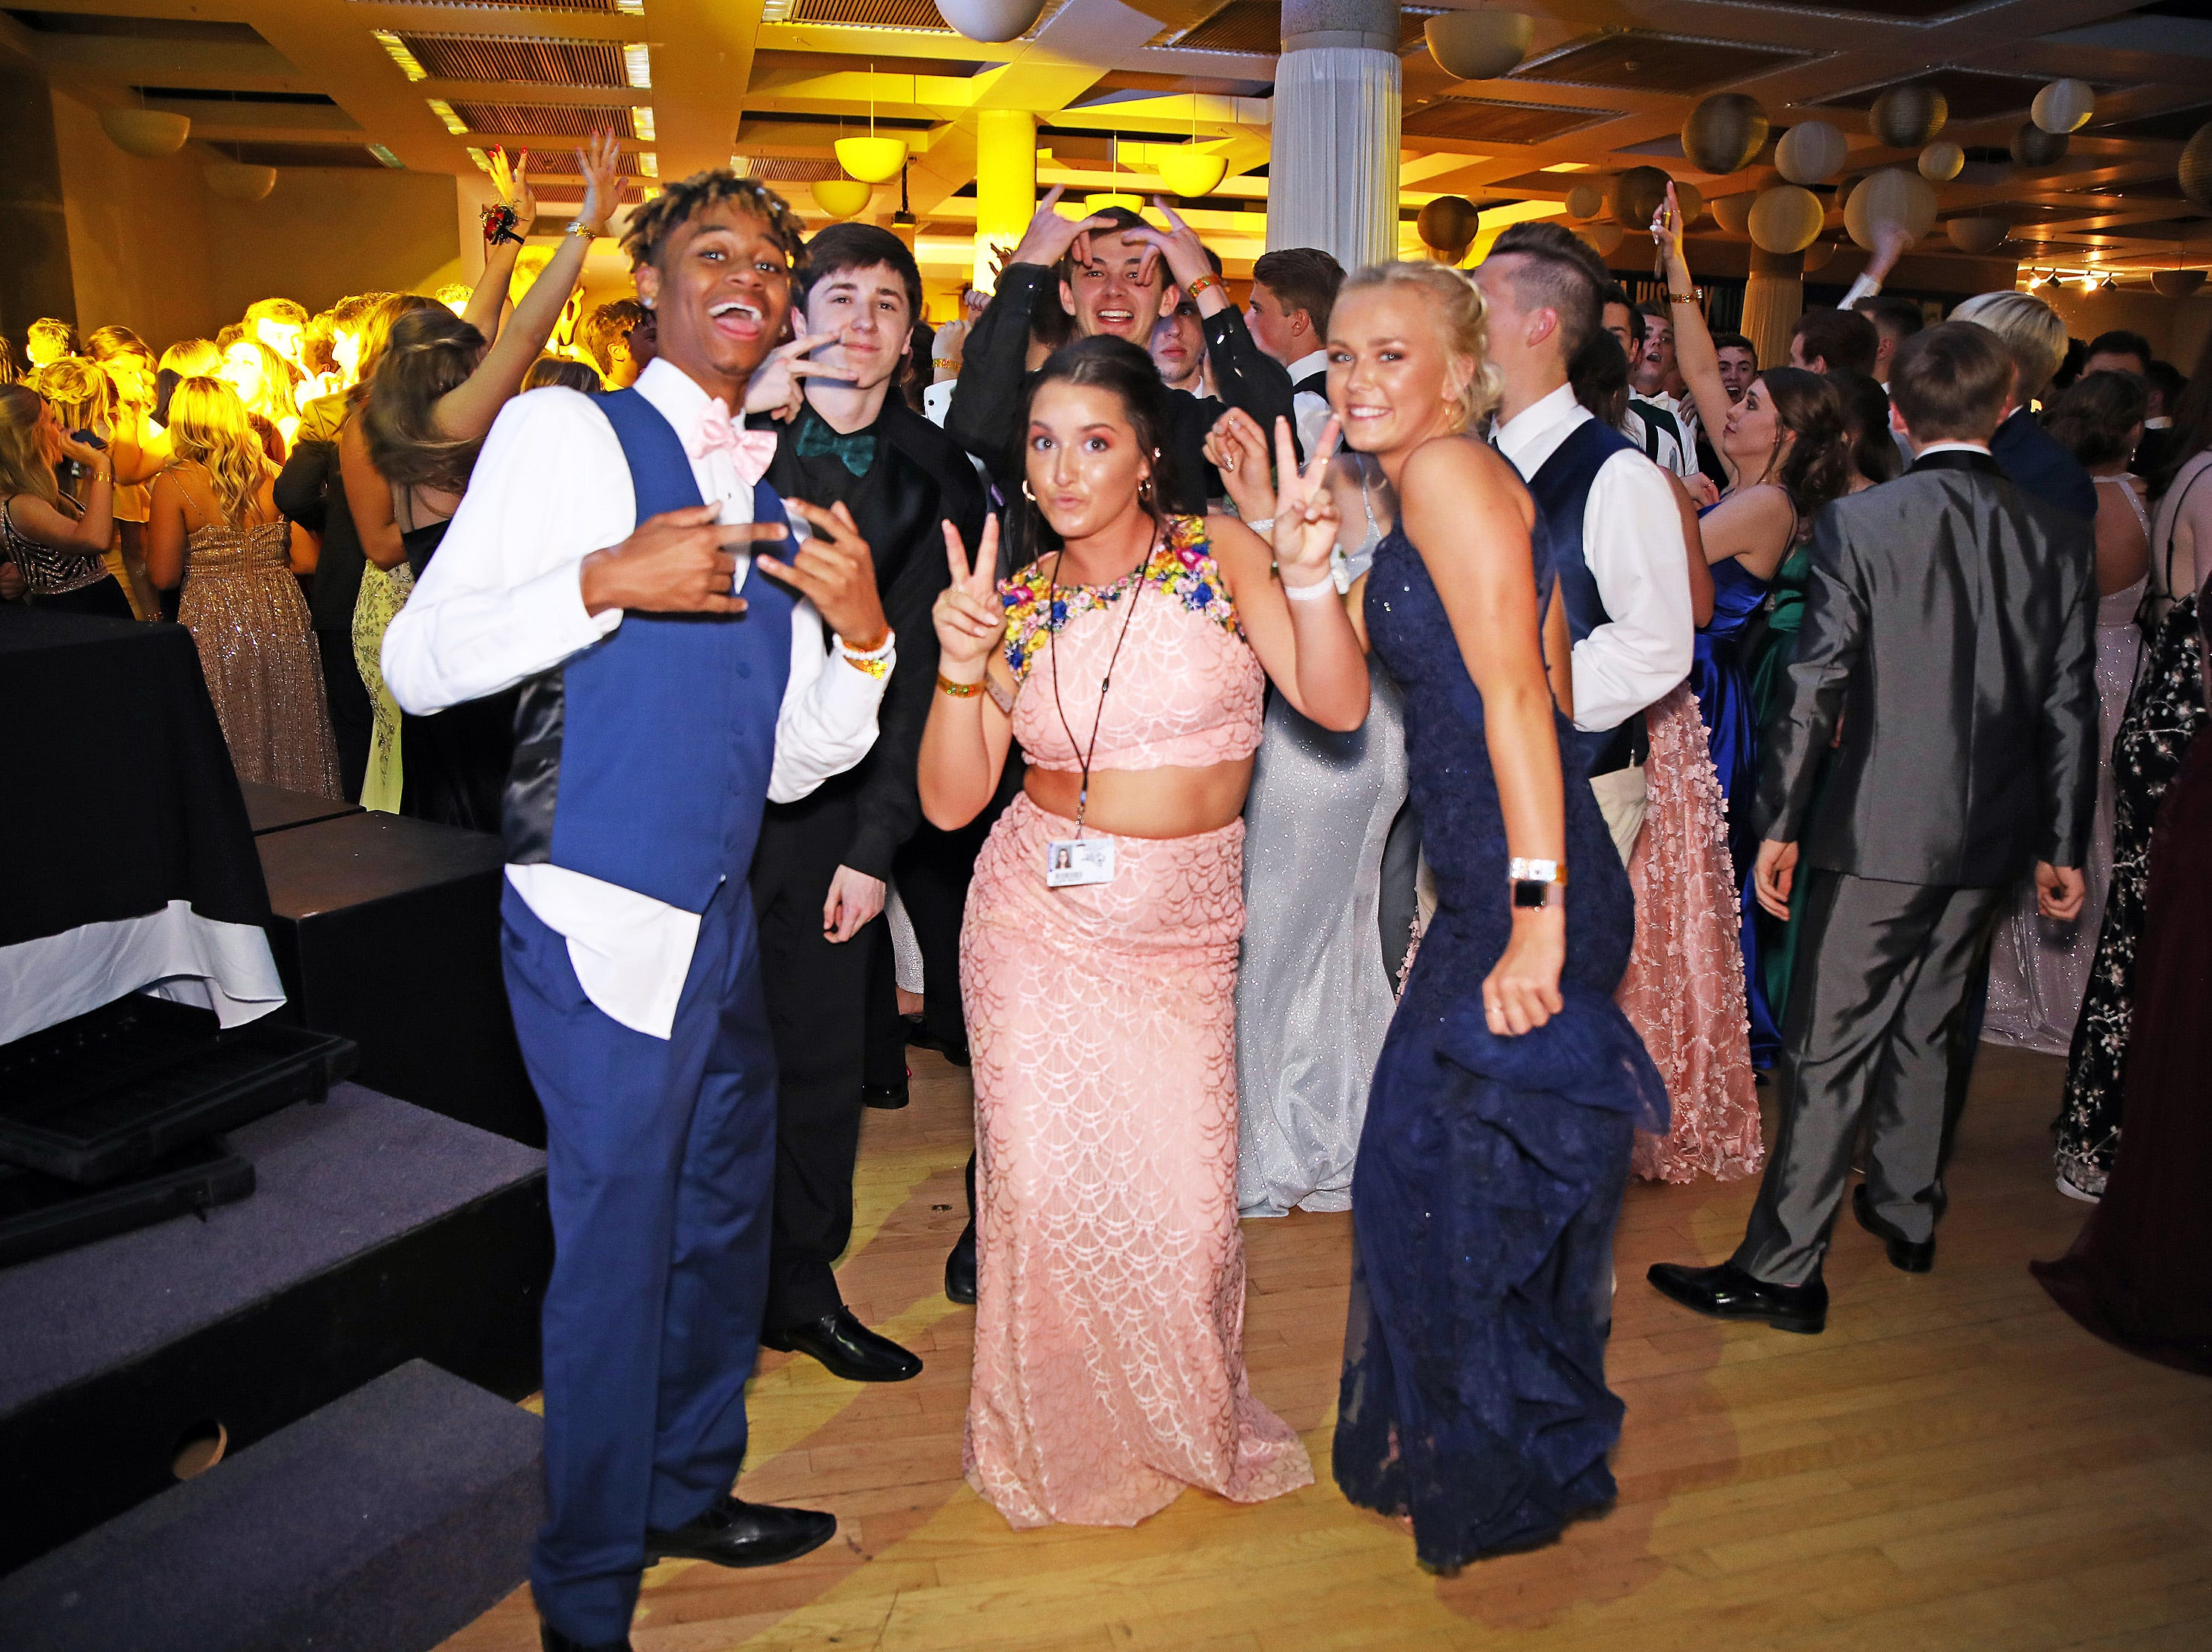 Centennial students pose for a photo during the Ankeny Centennial High School prom at the State Historical Building in Des Moines on Saturday, April 13, 2019.